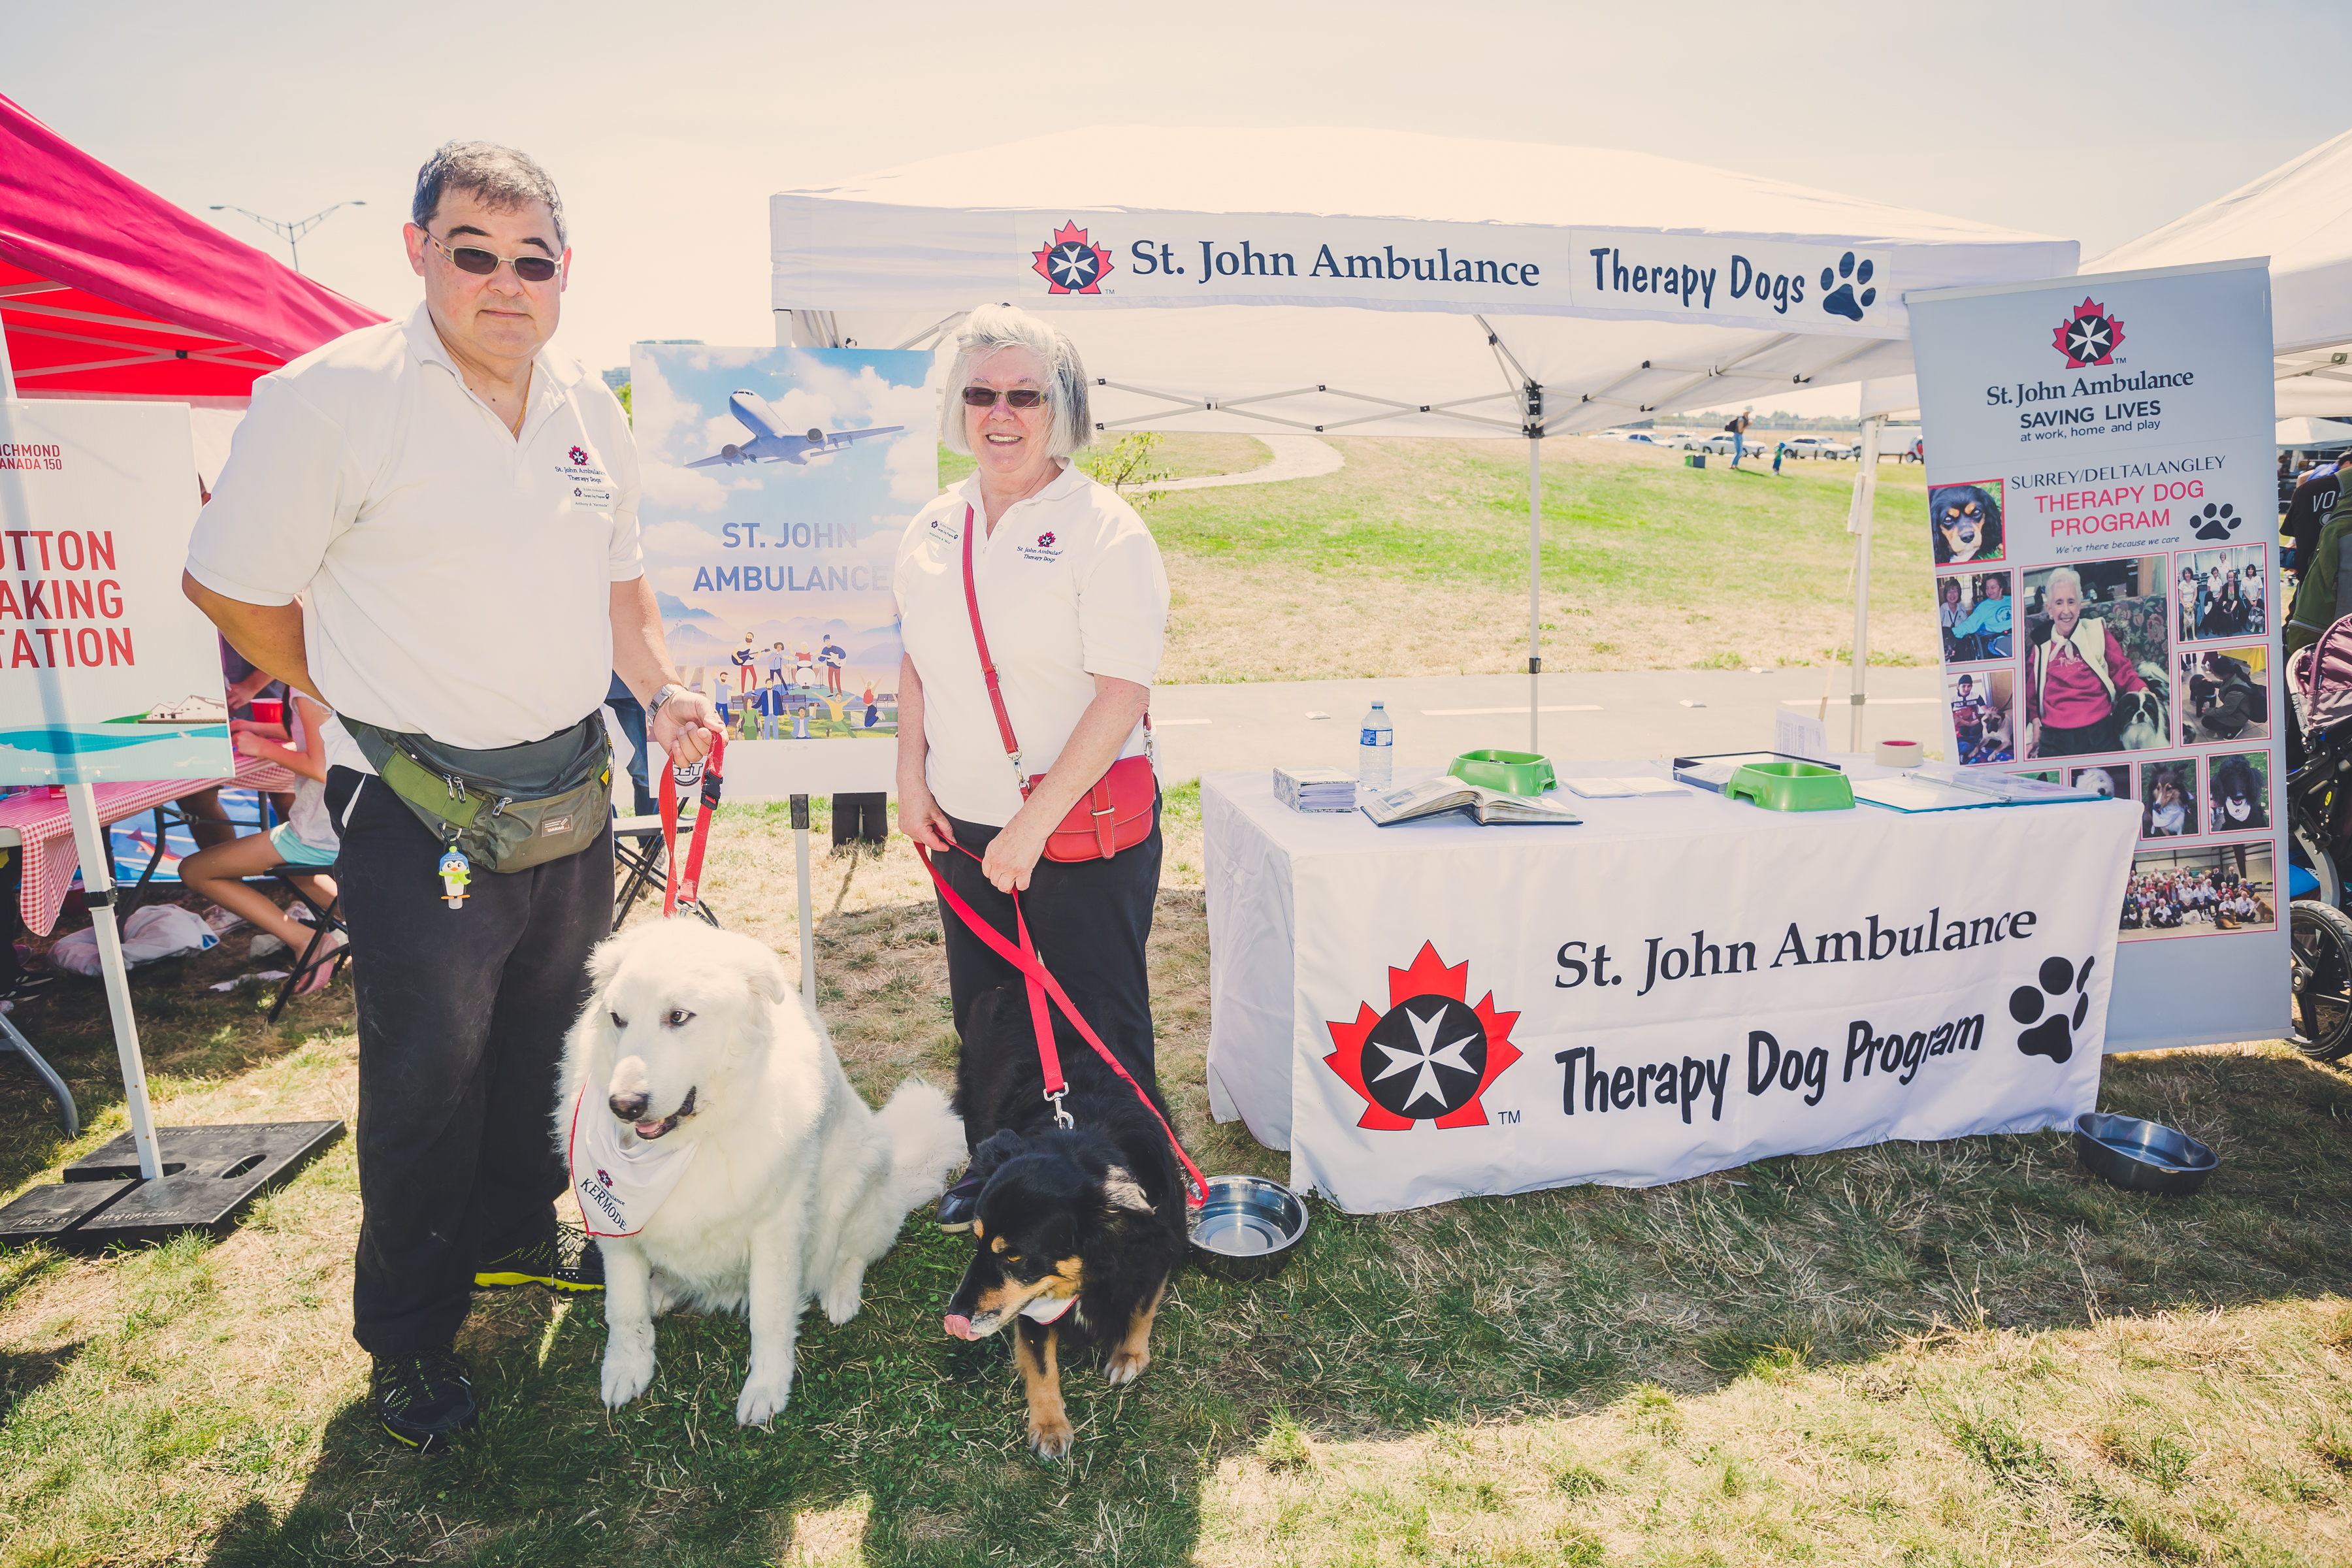 St John Ambulance at their booth